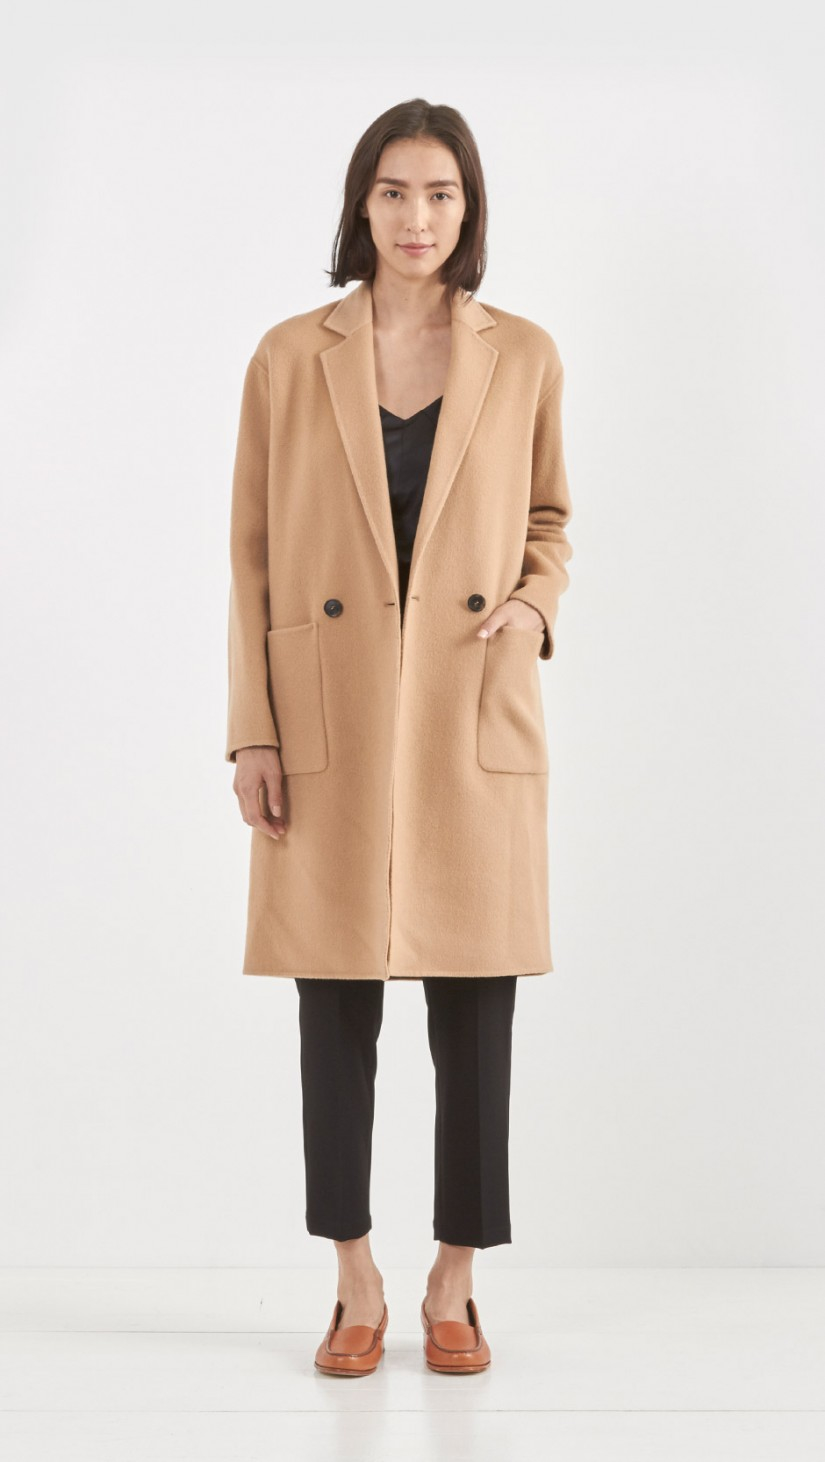 Theory Eletkah Wool Cashmere Coat in Natural | Lyst